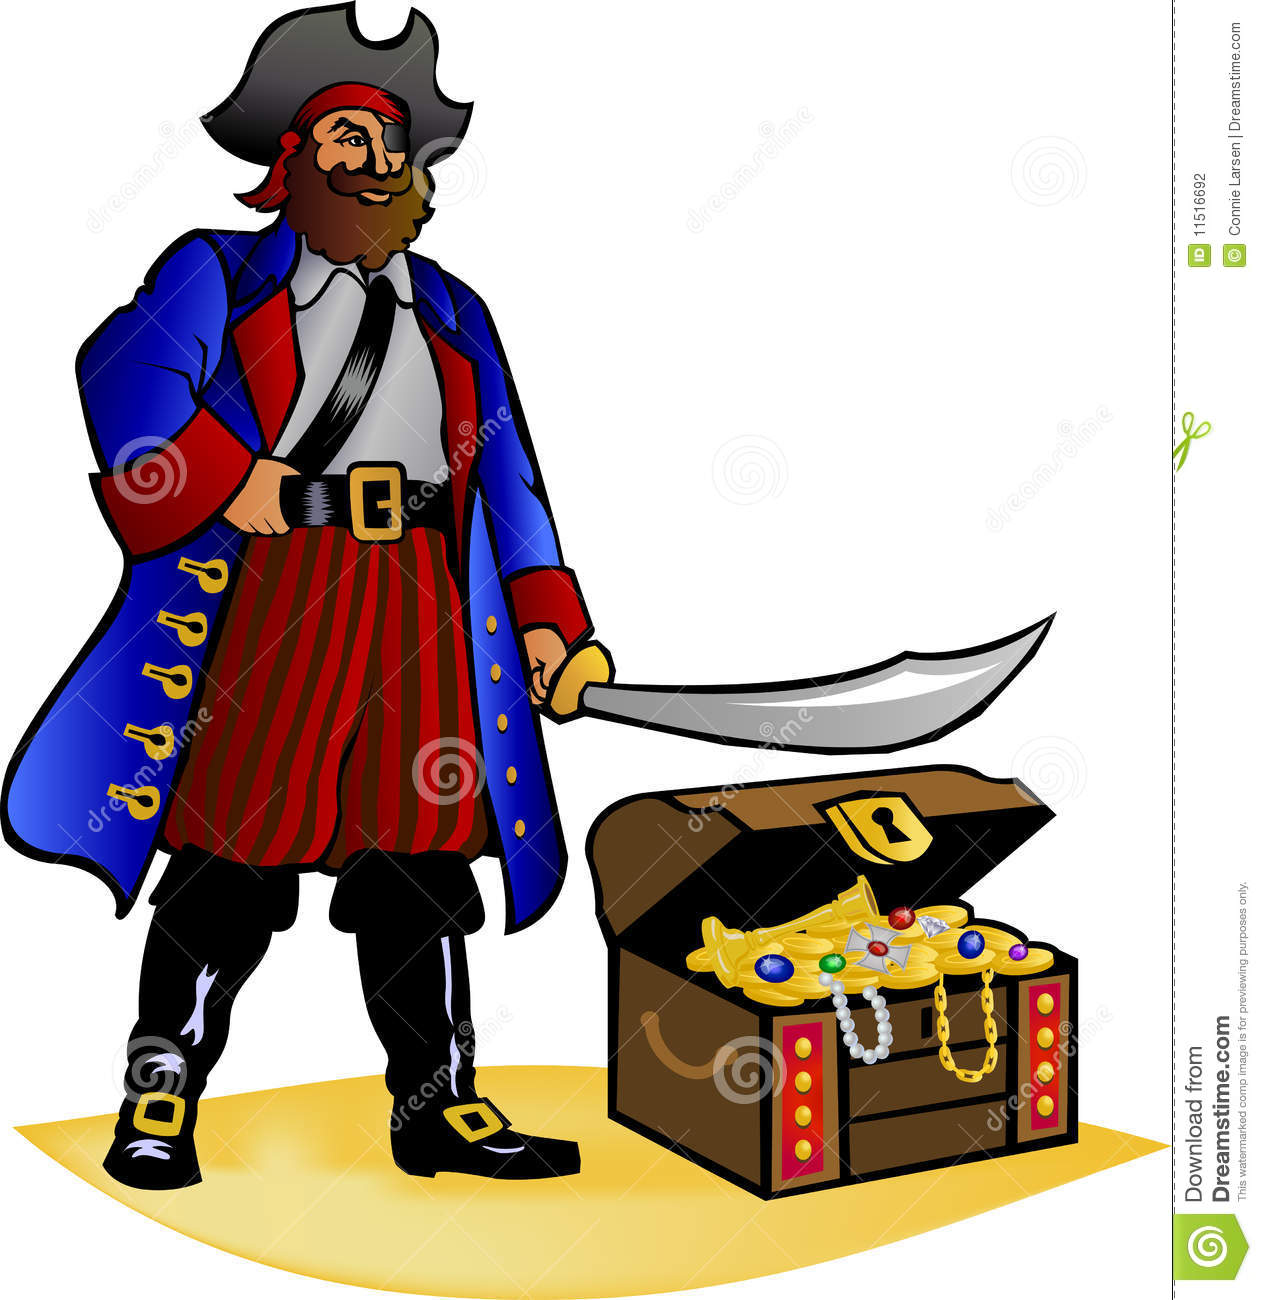 Image result for PIRATES TREASURE CHEST